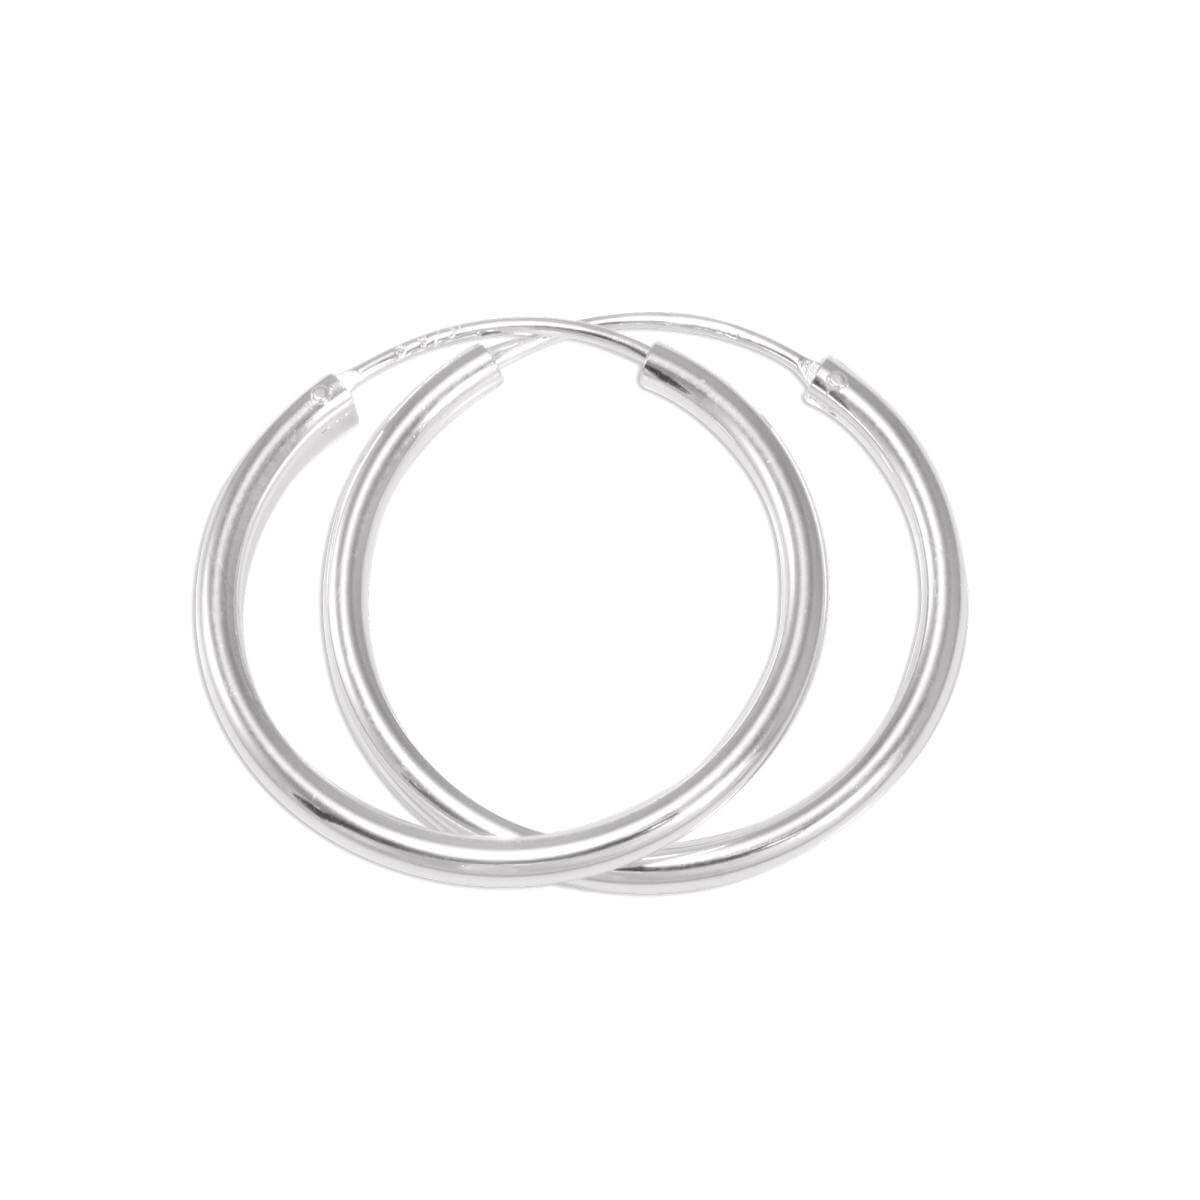 Sterling Silver 25mm Hoop Earrings